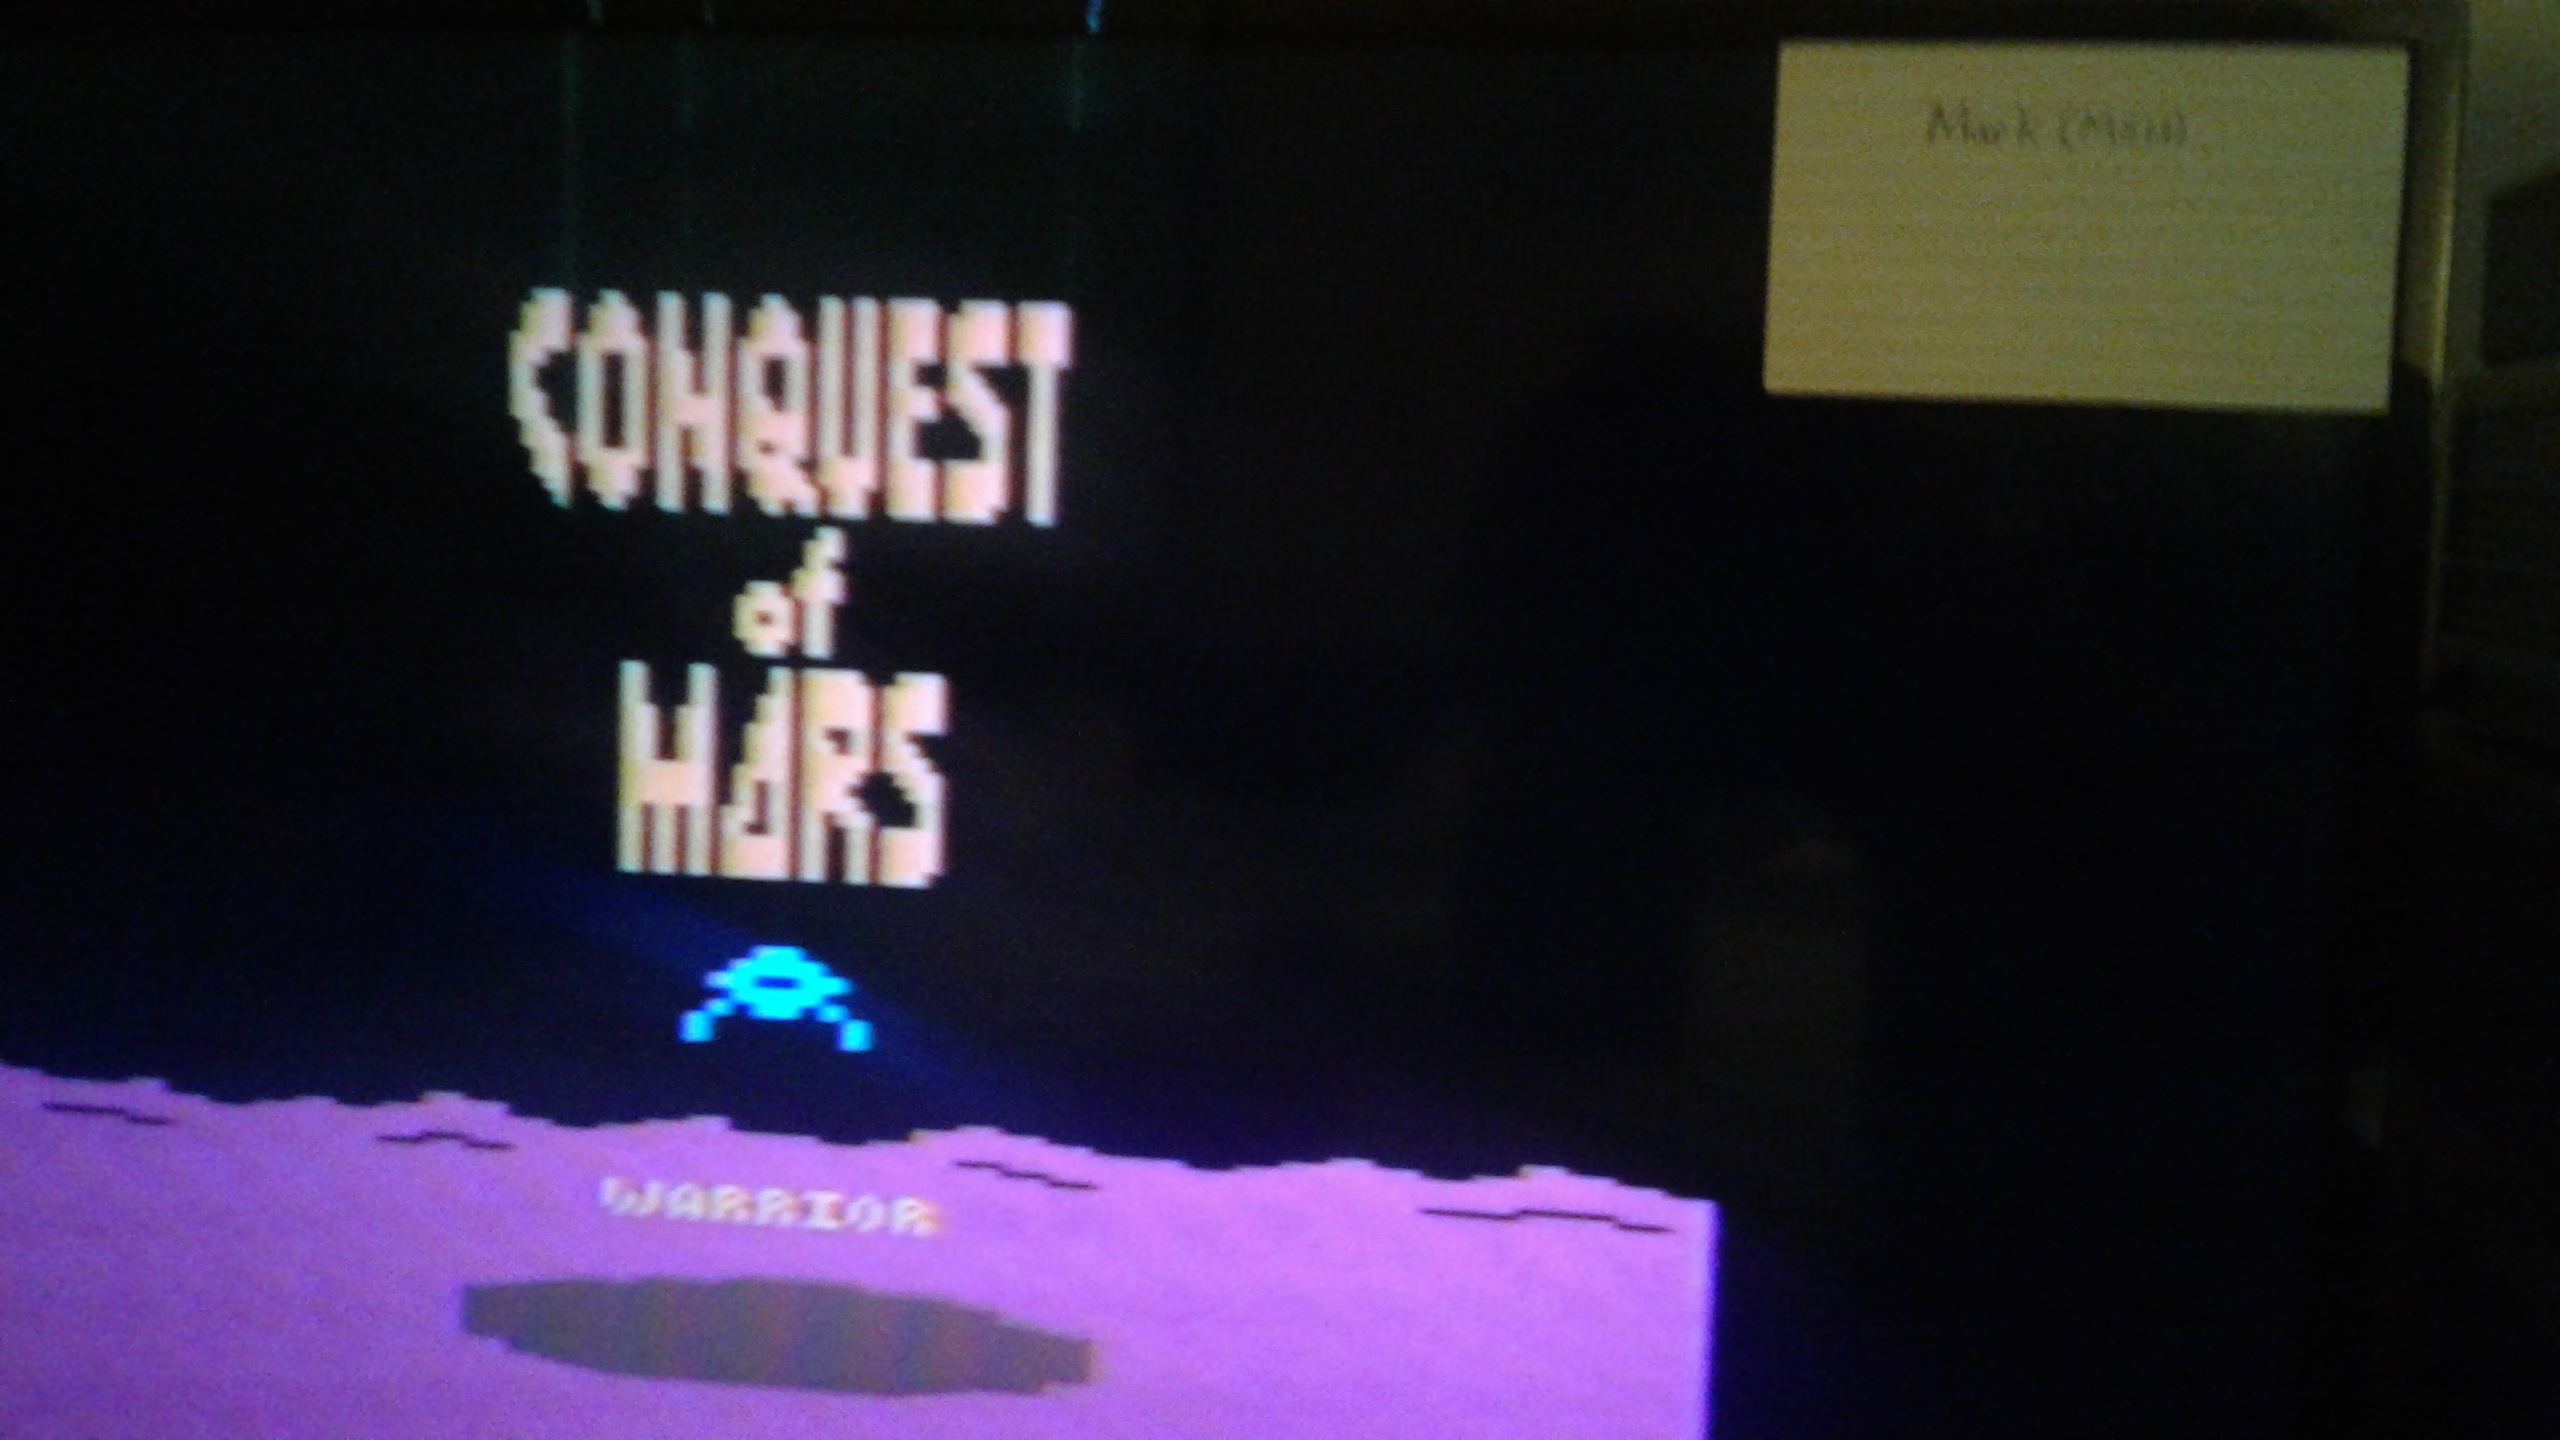 Mark: Conquest of Mars: Warrior (Atari 2600 Novice/B) 25,330 points on 2019-03-06 02:49:22